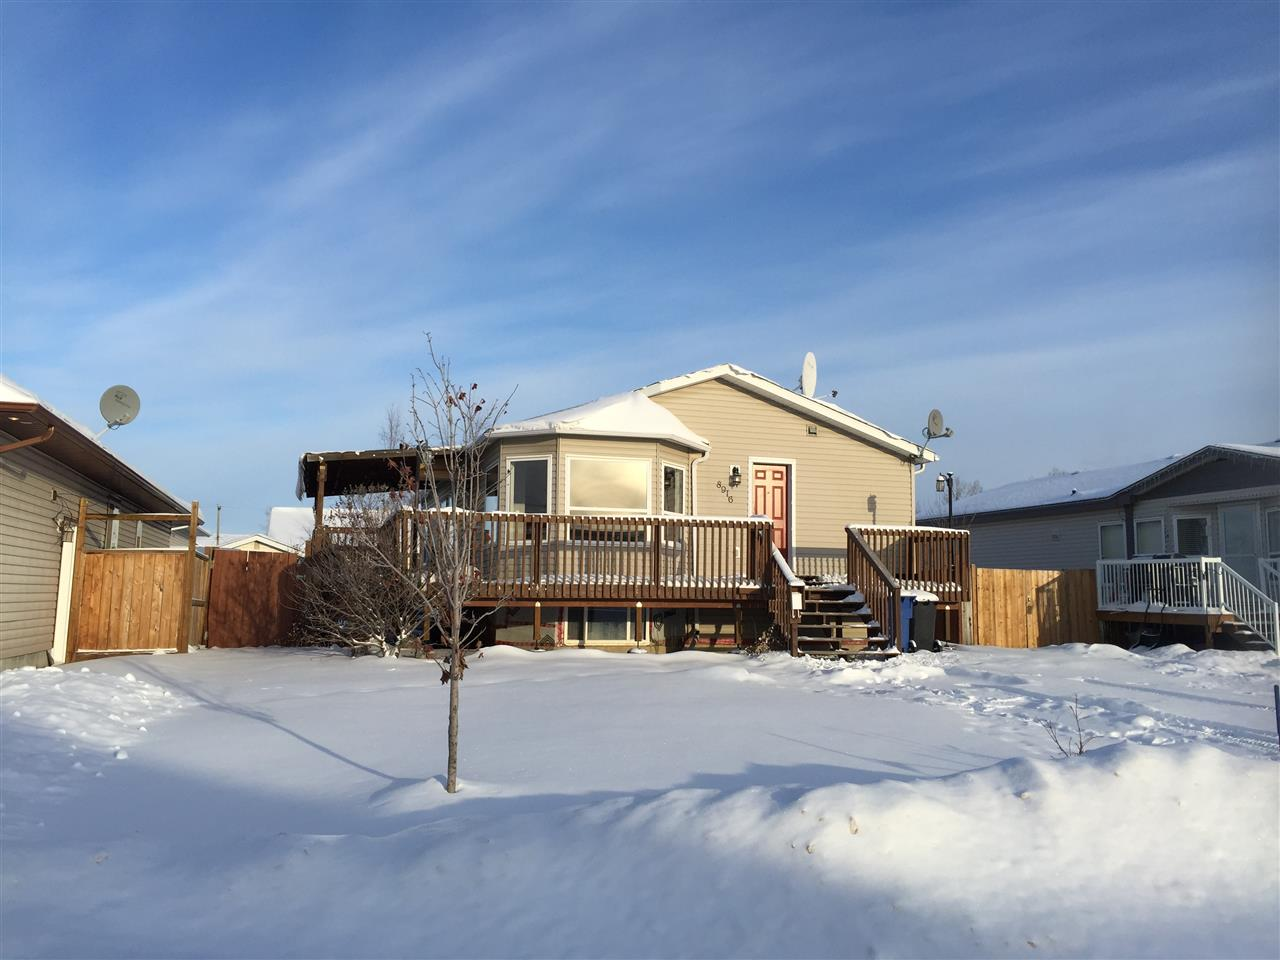 Main Photo: 8916 98 Avenue in Fort St. John: Fort St. John - City SE Manufactured Home for sale (Fort St. John (Zone 60))  : MLS® # R2126969